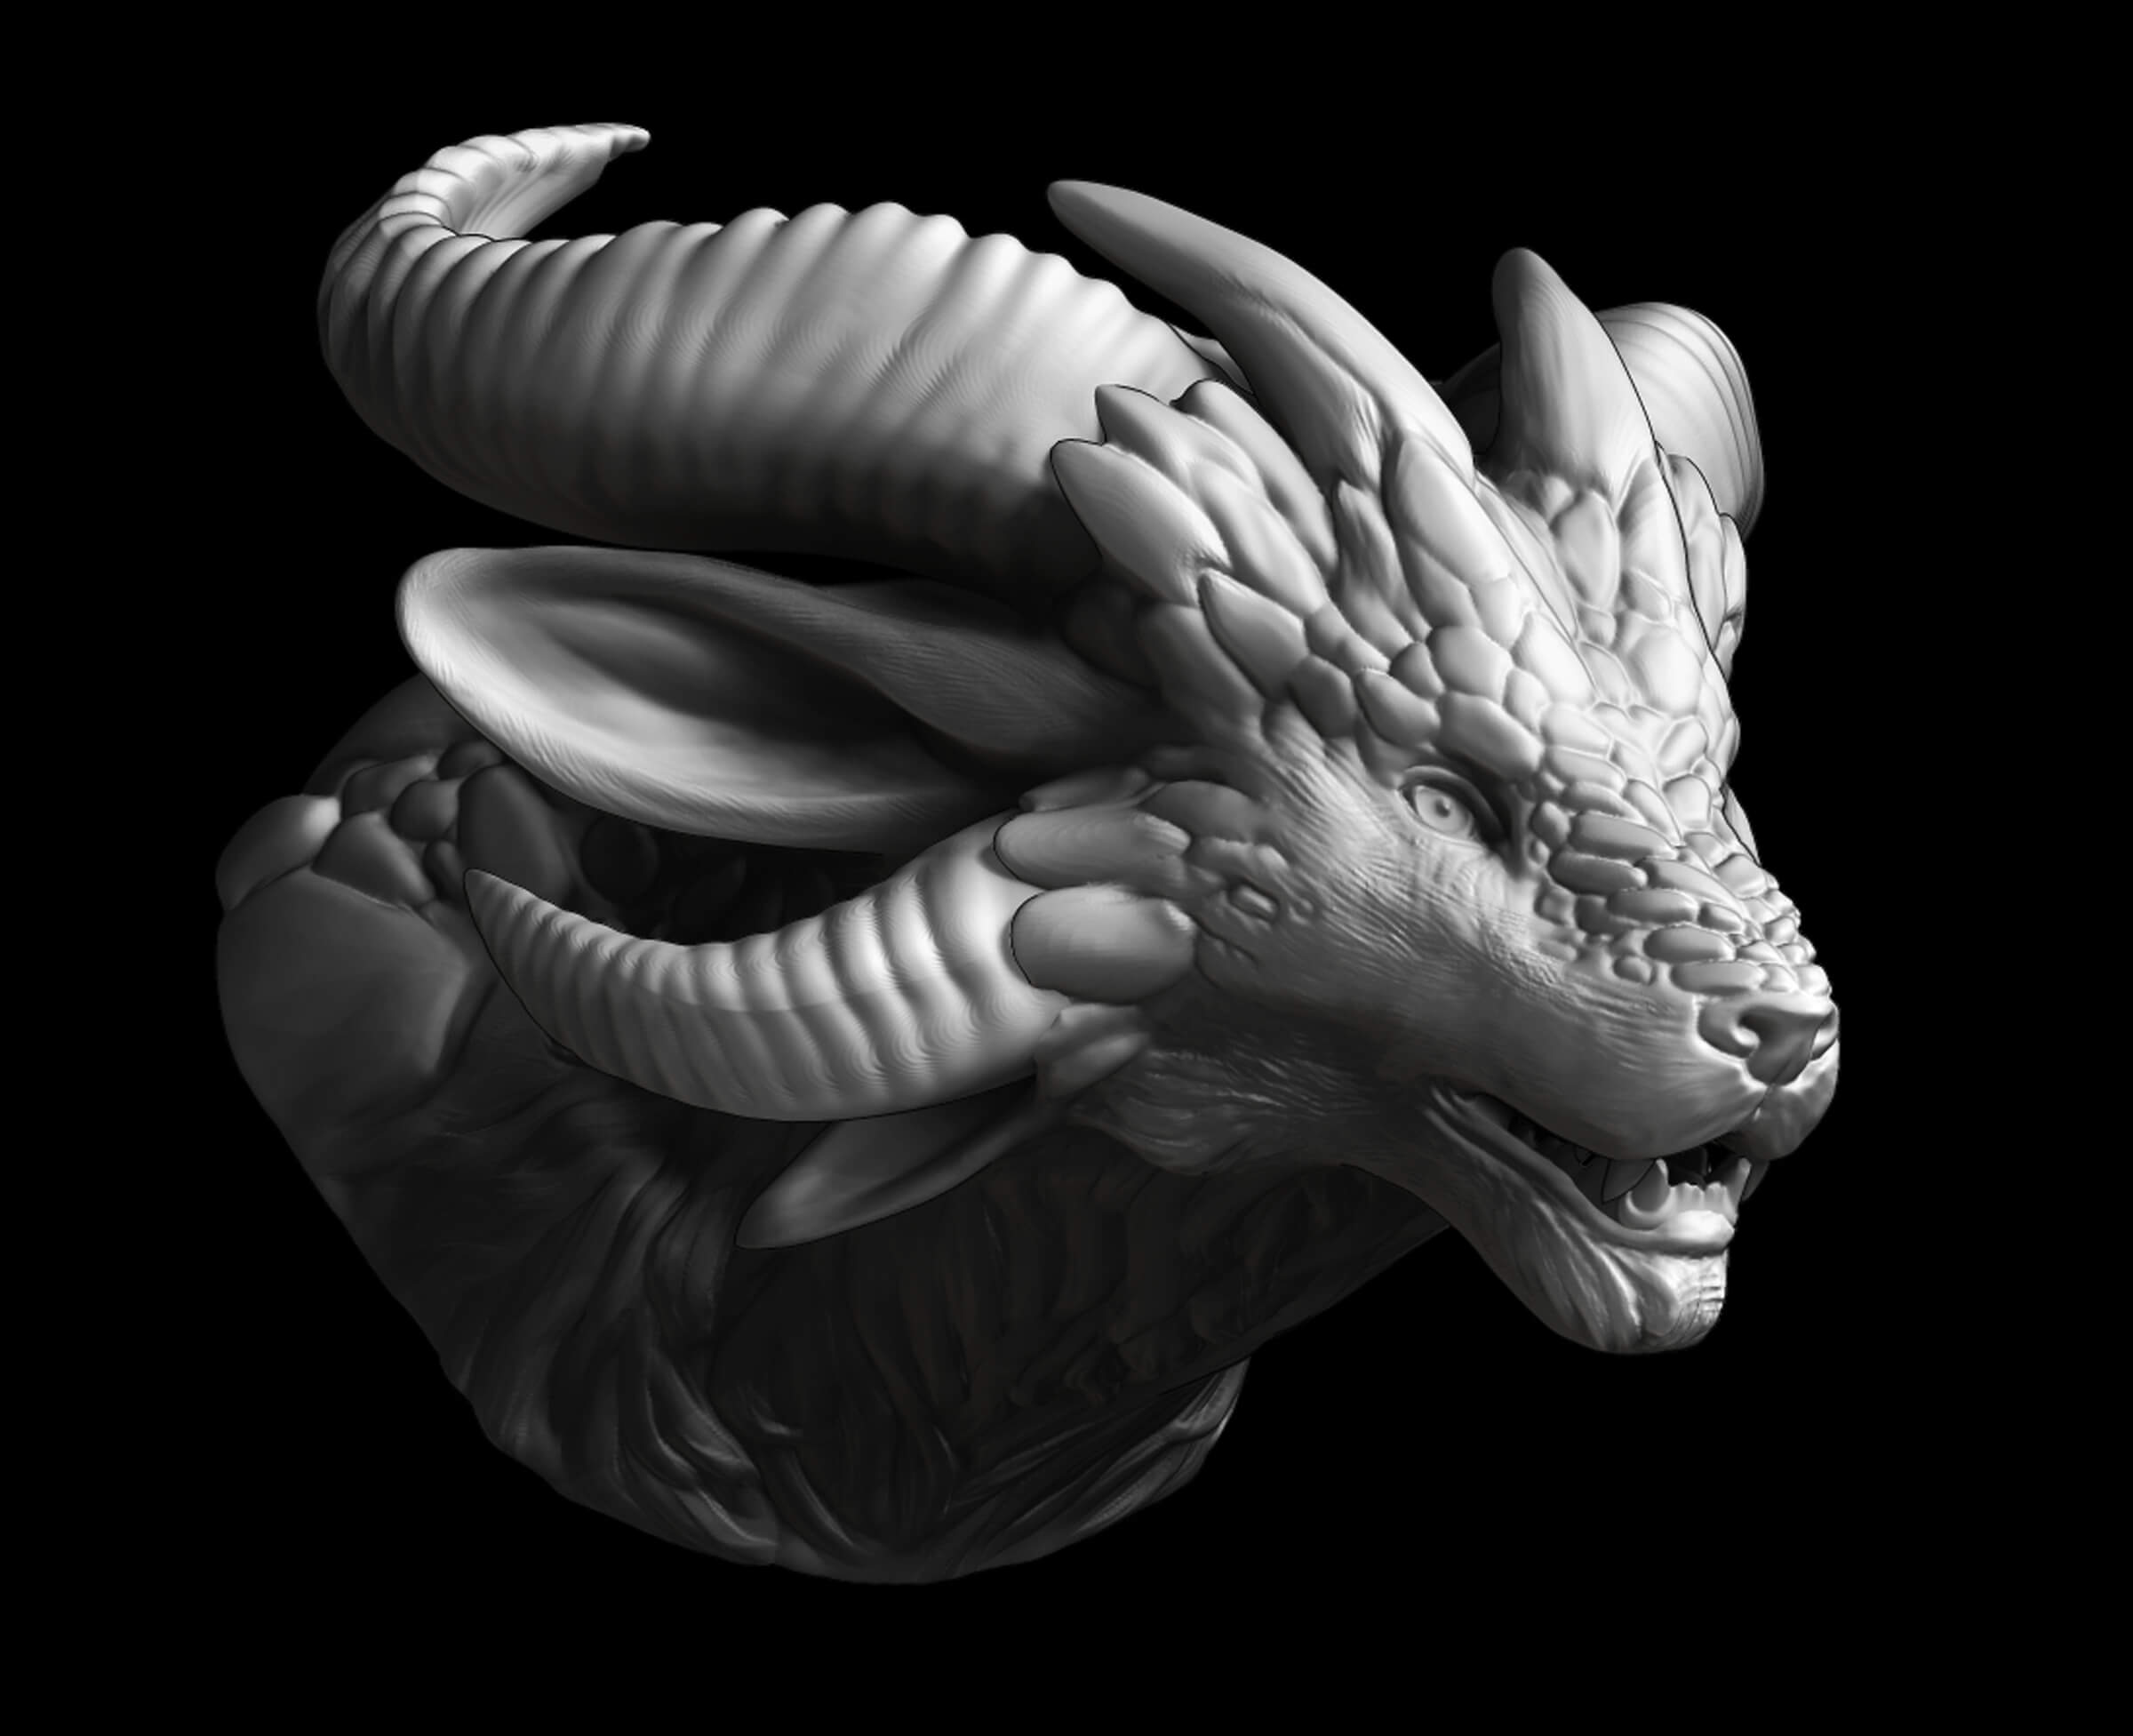 computer-generated 3D model of a creature with a lion's face and various horns extending from its head